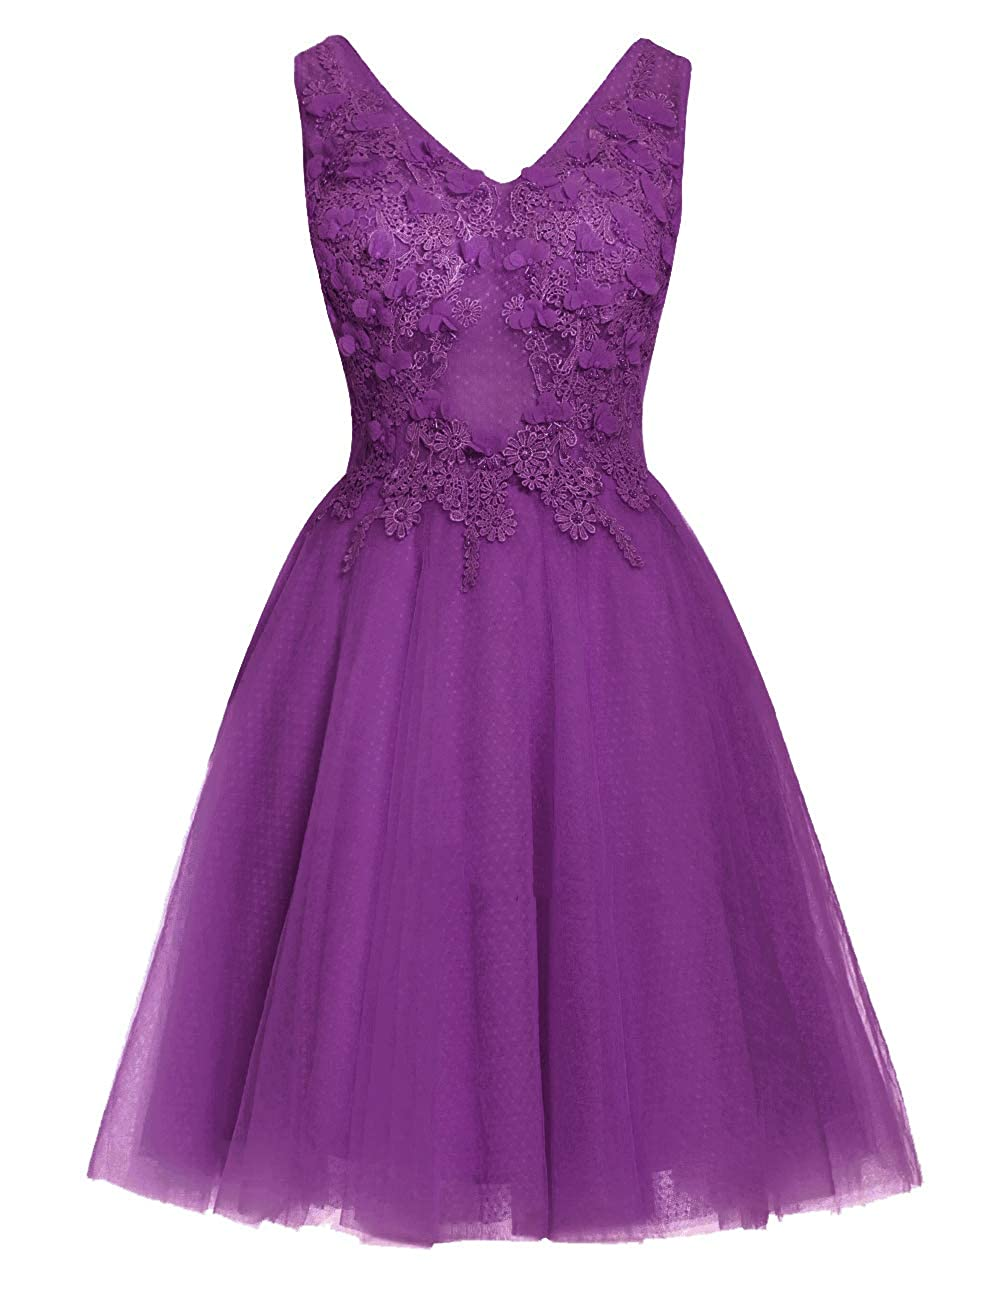 Purple Uther Short Homecoming Dresses Lace Appliques 2018 Prom Wedding Party Dress V Neck